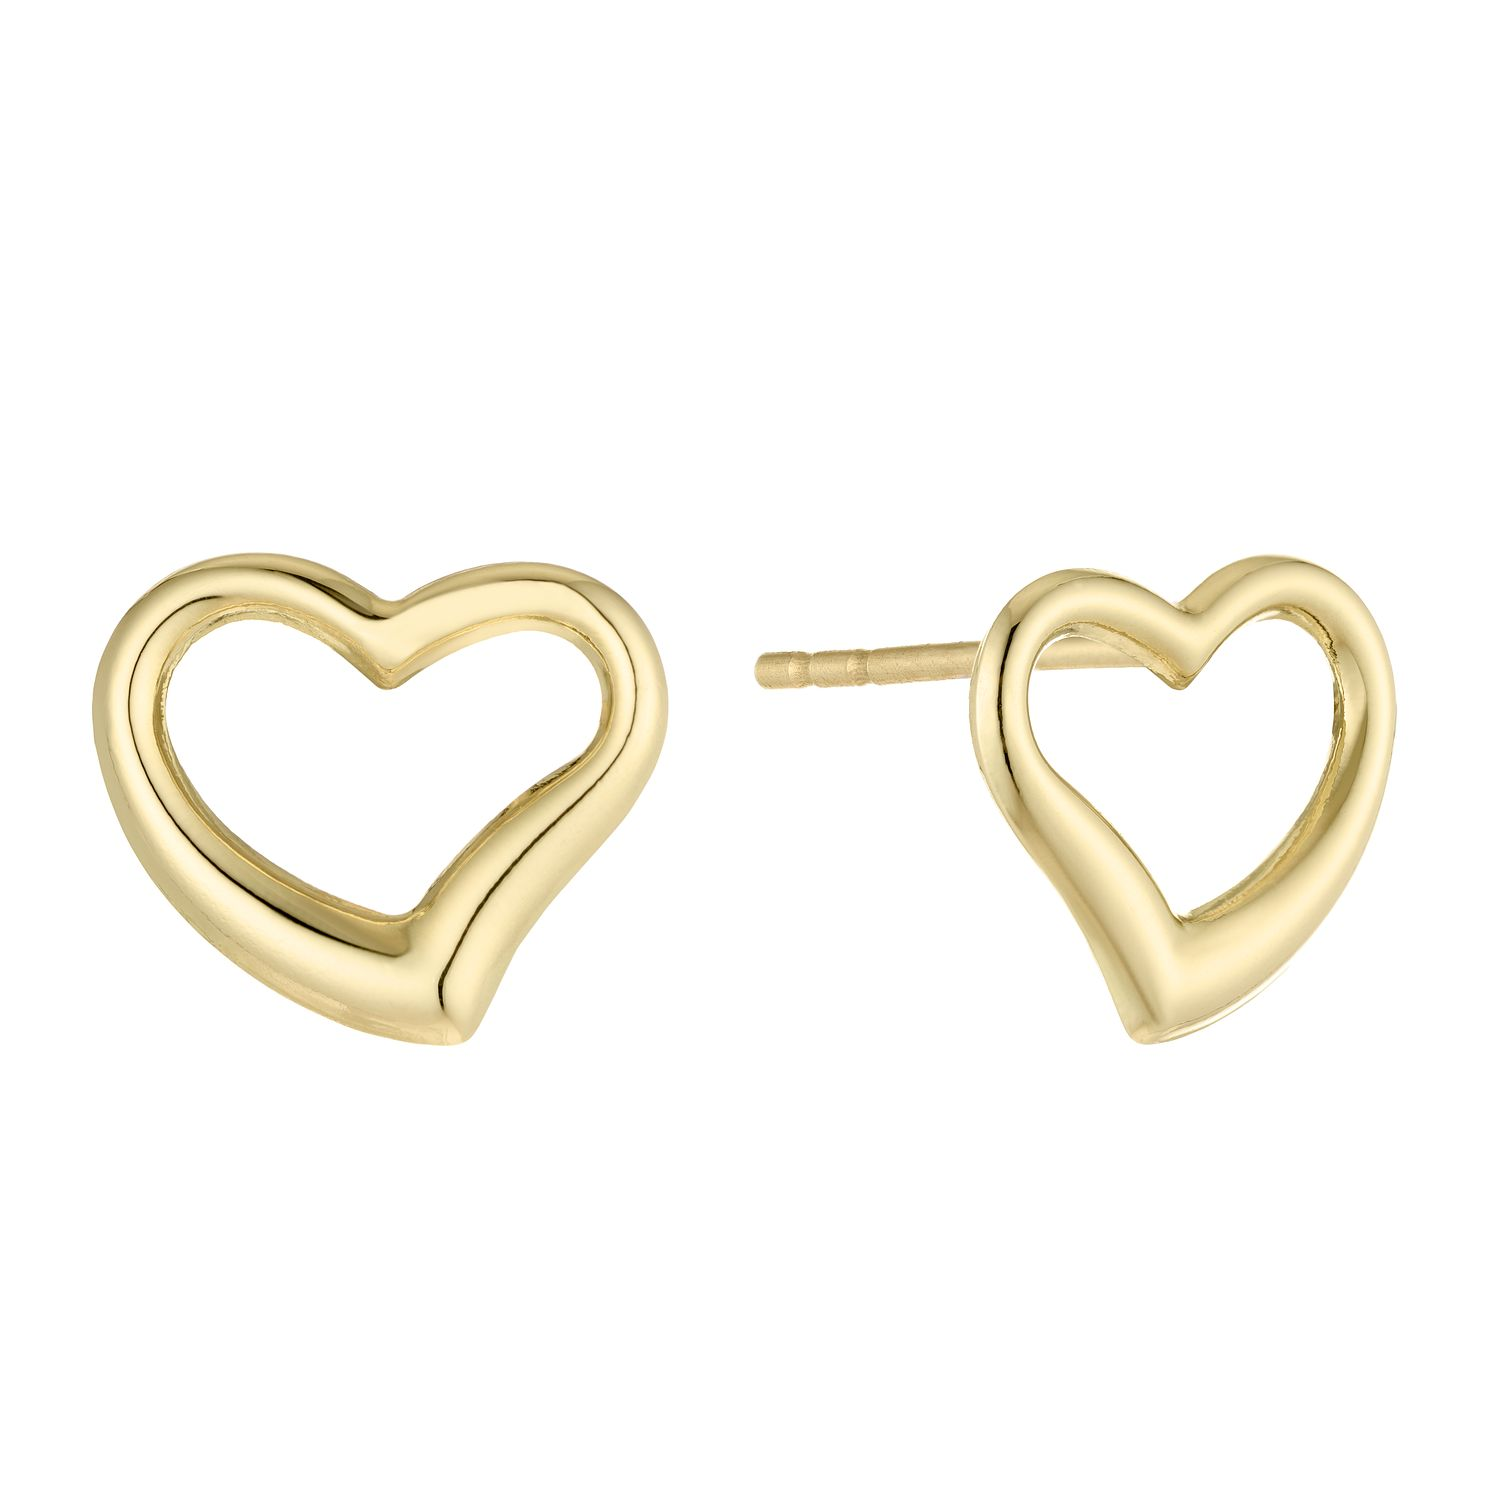 9ct Yellow Gold Open Heart Stud Earrings - Product number 5088038